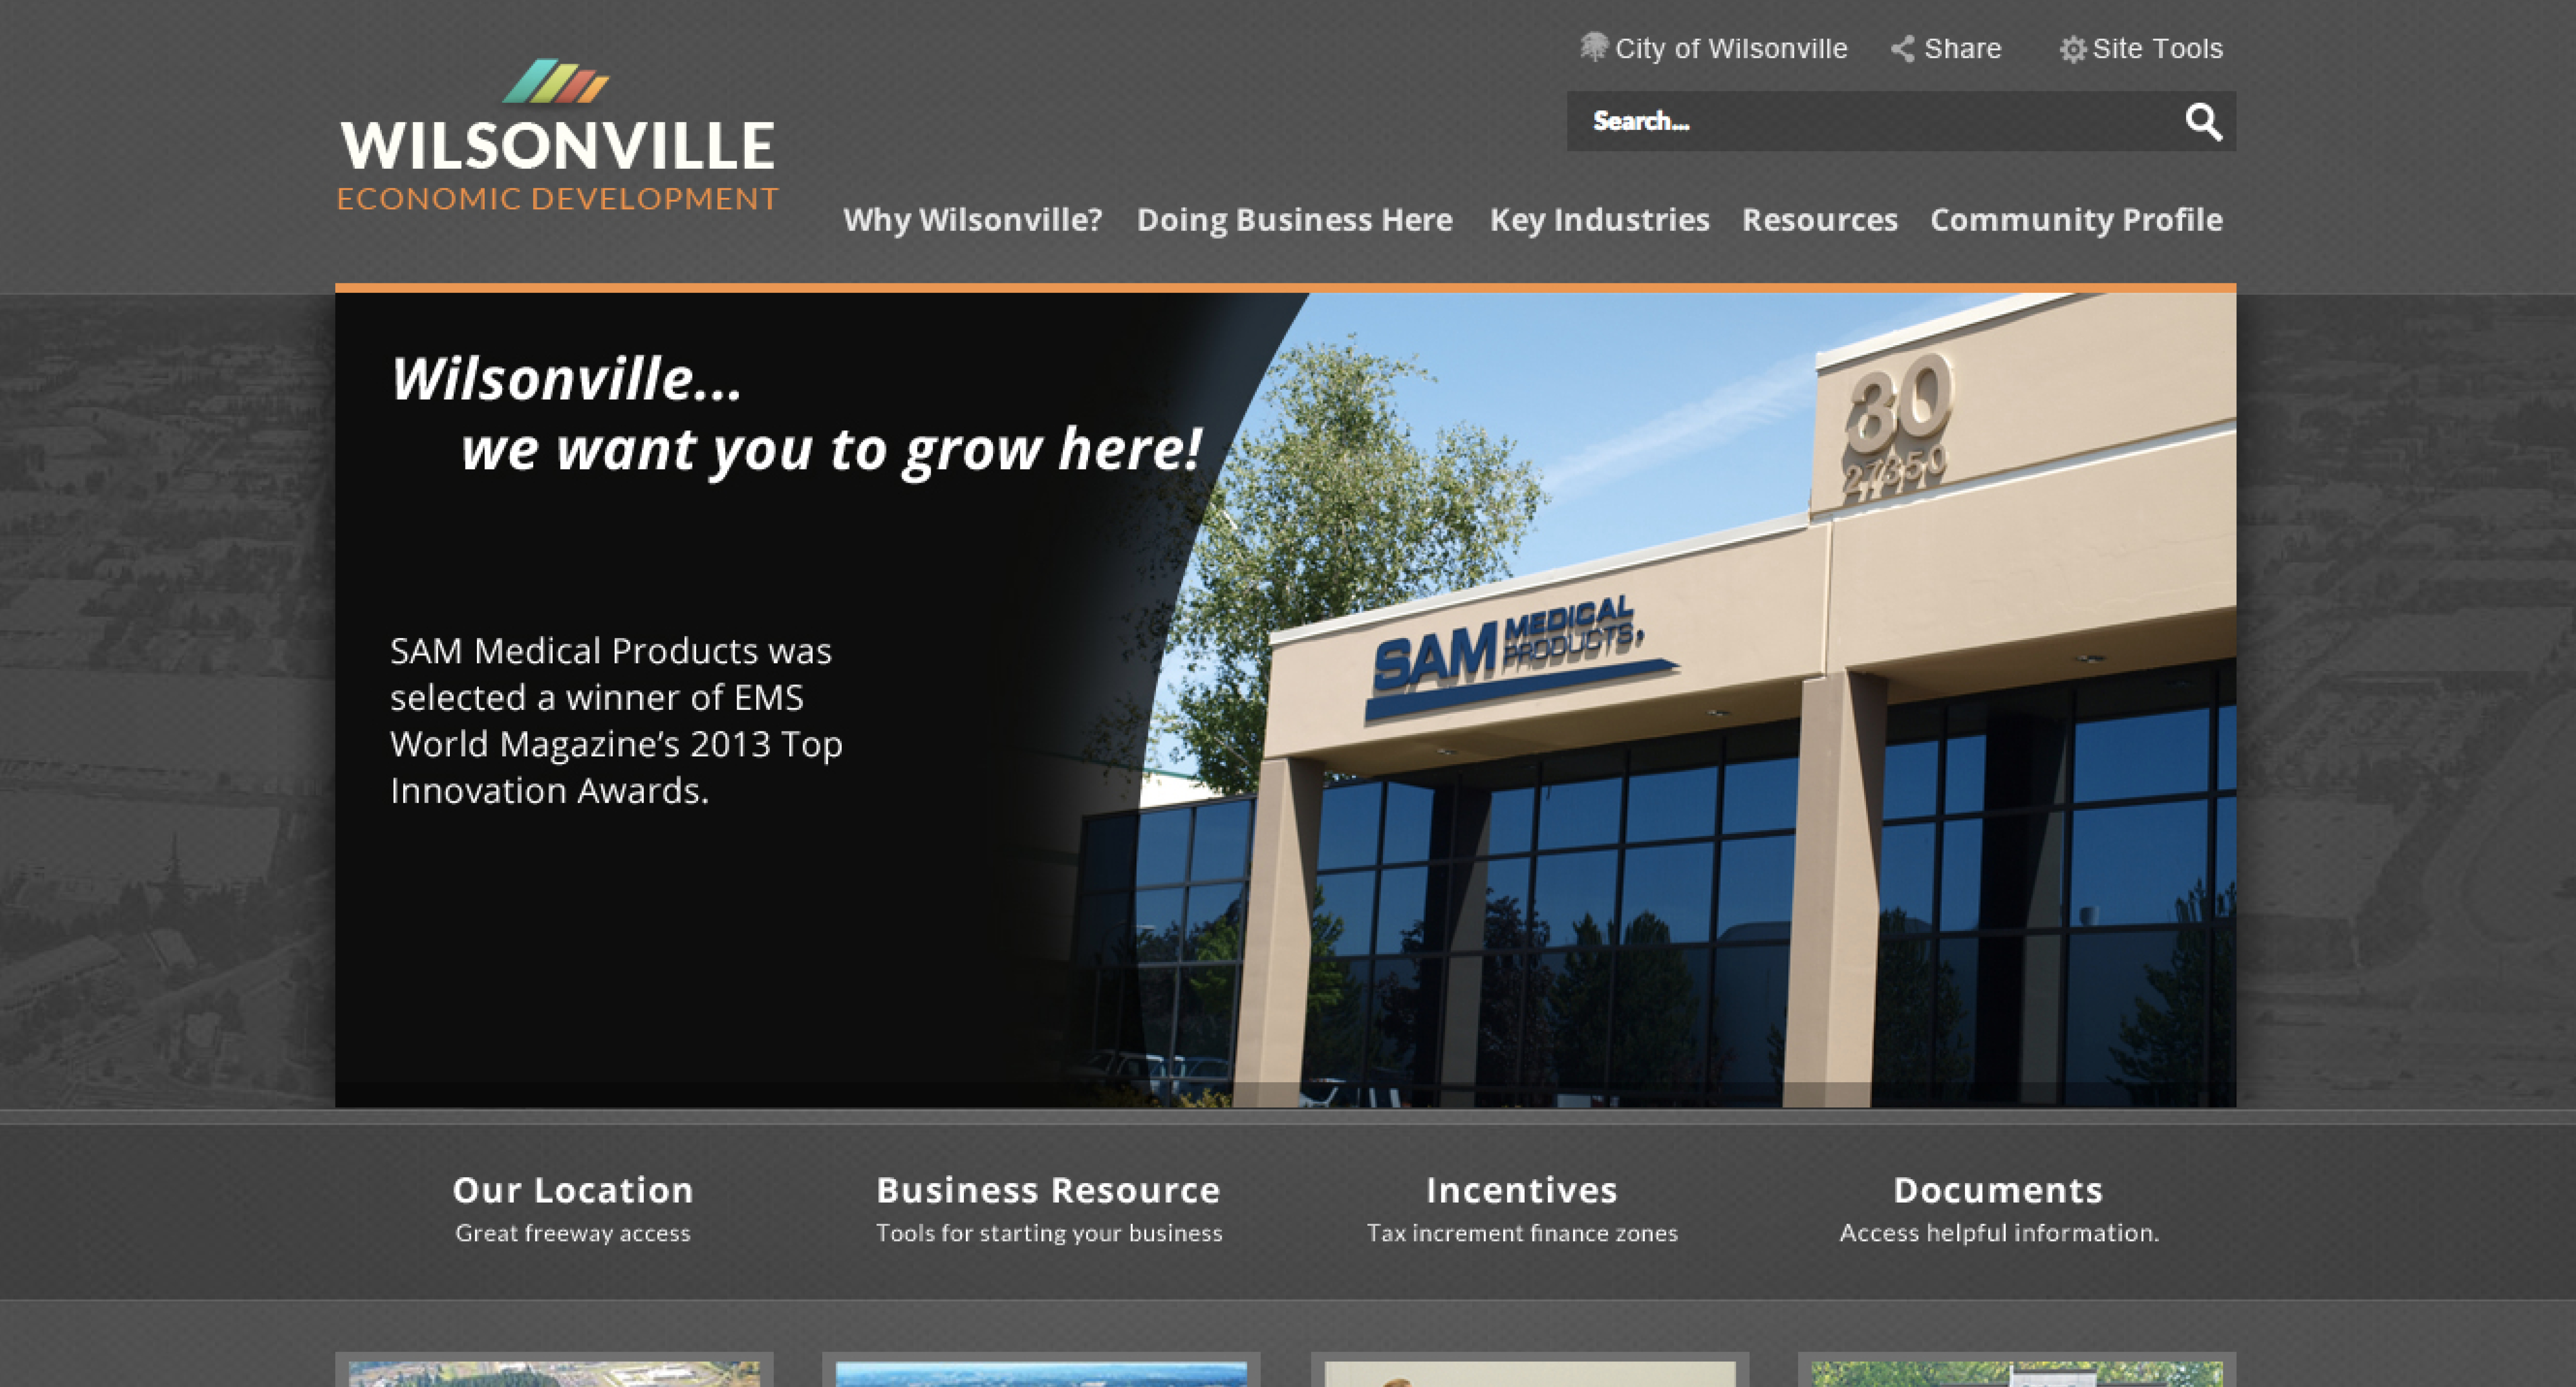 Wilsonville, Economic development, city of wilsonville, chamber, chamber news, opportunities, resources, economic resources, business tools